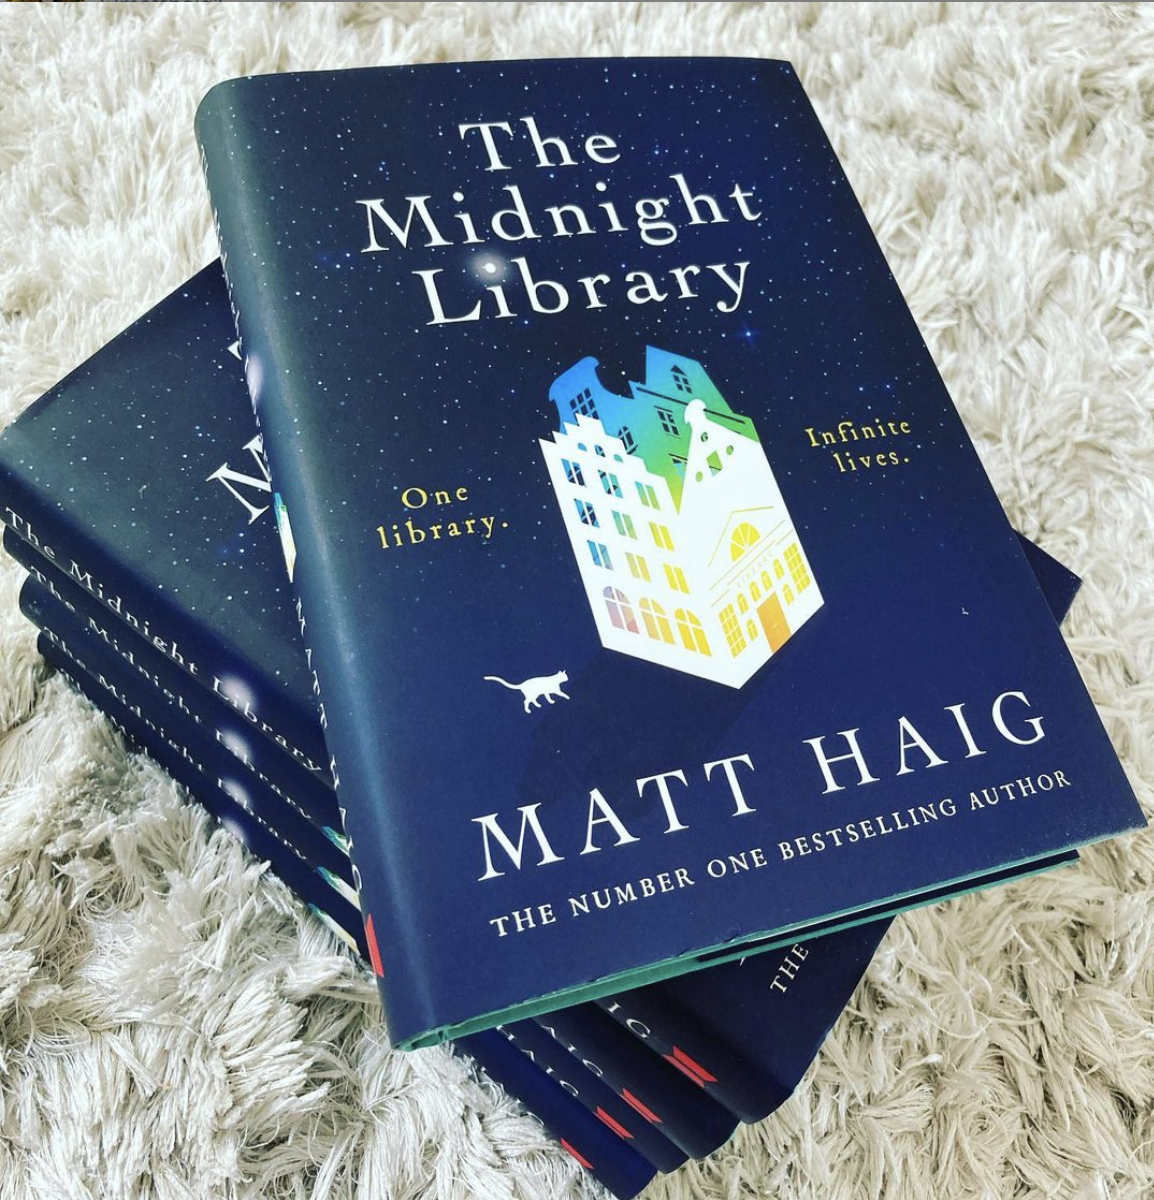 a stack of five copies of The Midnight Library with the text one library, infinite lives